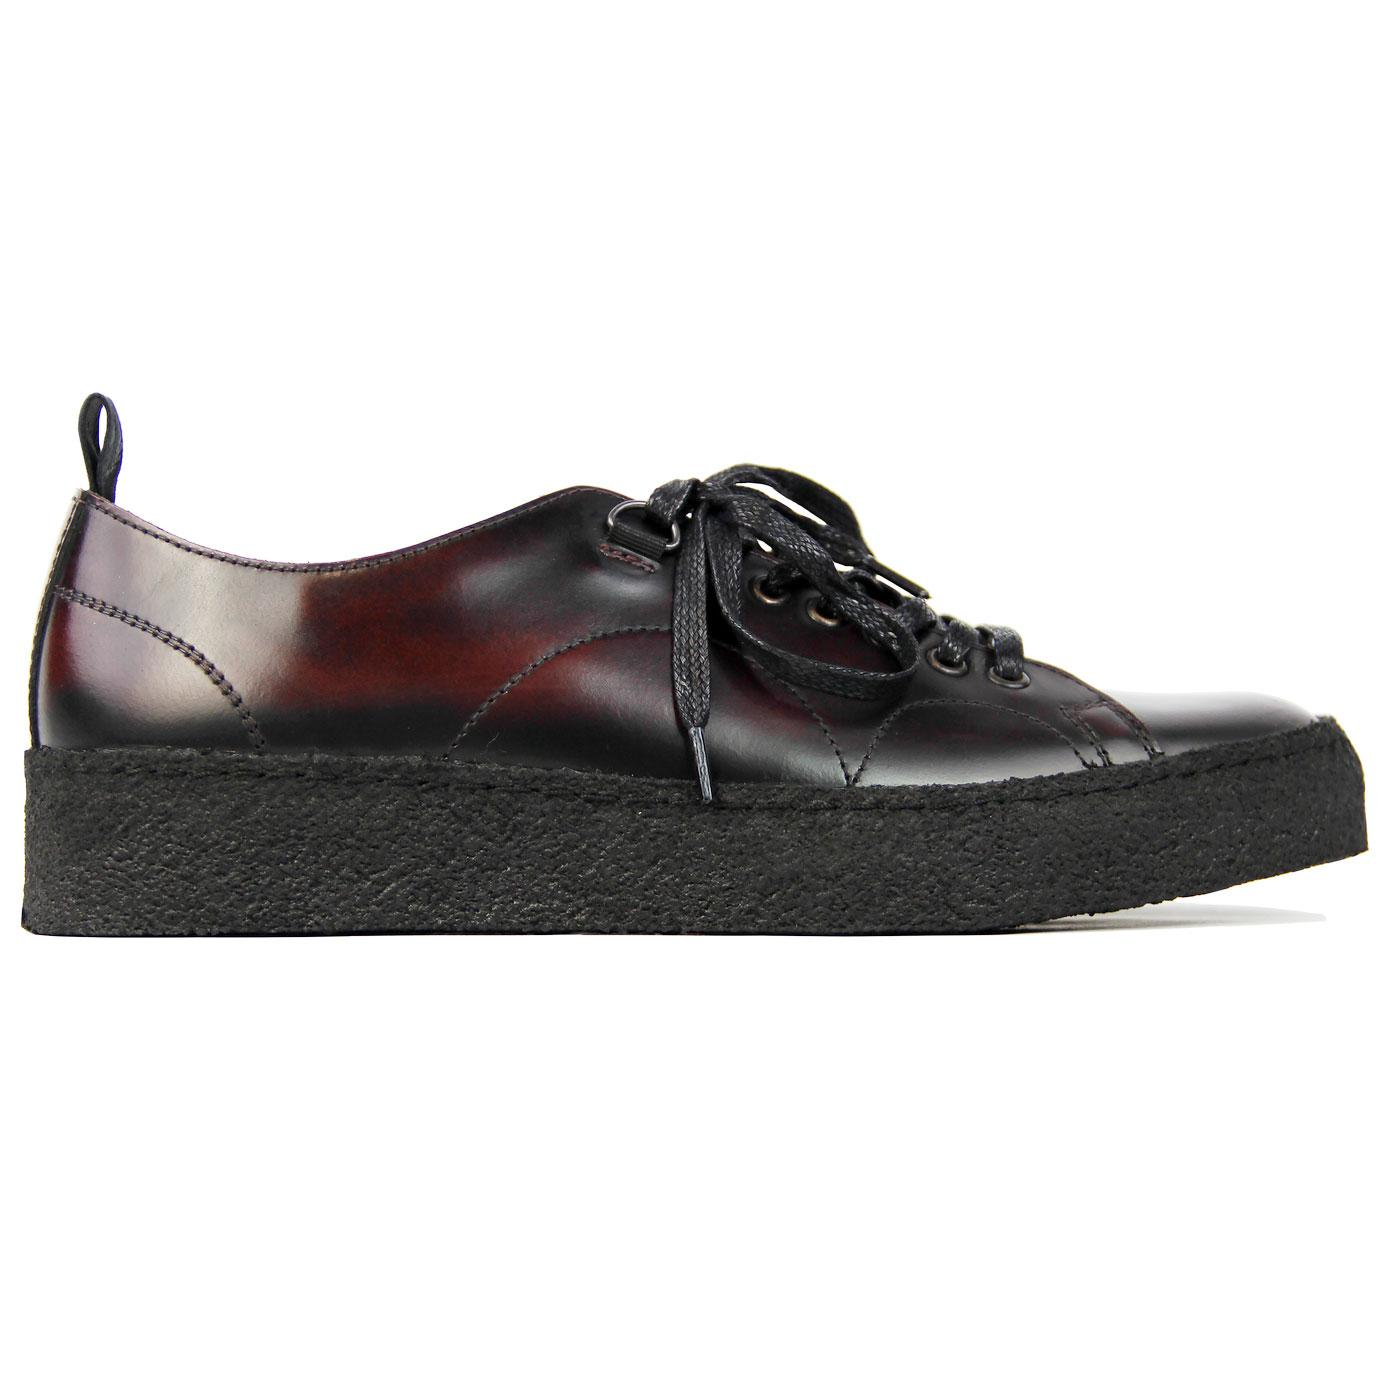 FRED PERRY X GEORGE COX Retro Mod Creeper Shoes